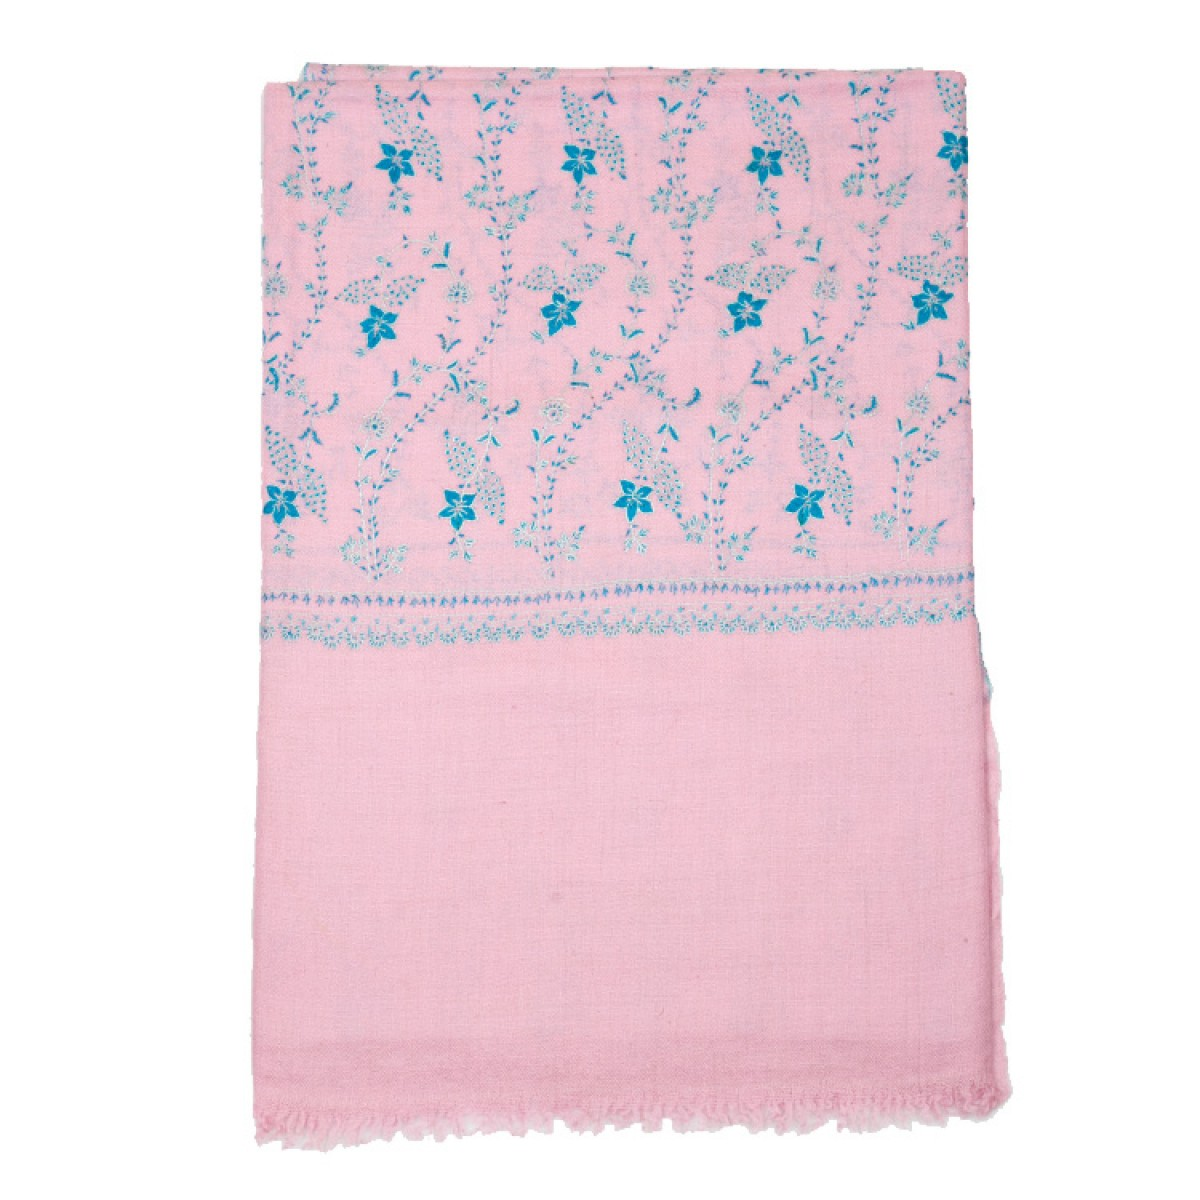 Embroidered Pashmina Shawl - Baby Pink